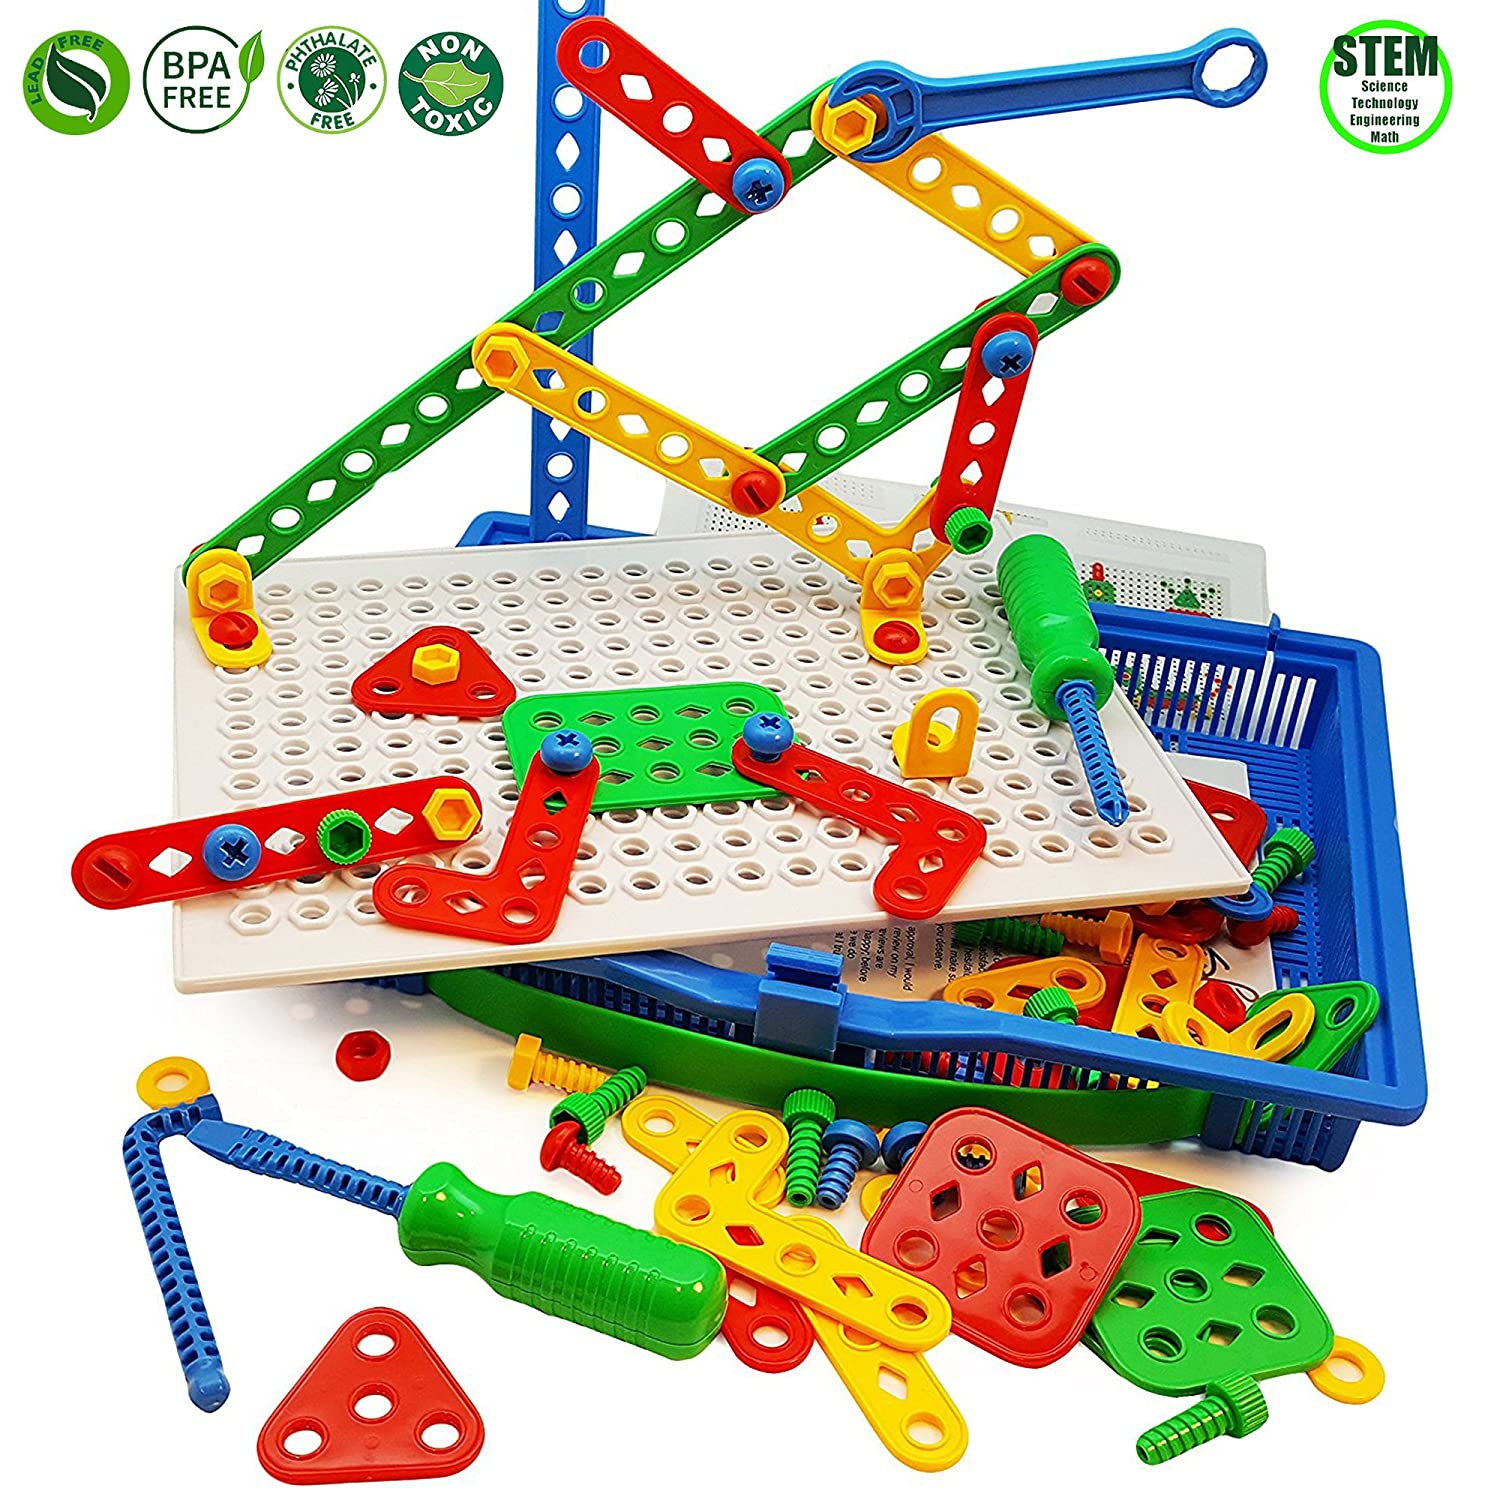 Skoolzy Educational Preschool Building Toys - 97pc Kids Construction Engineering Tool Set | Learning Tinker STEM Toys for Boys & Girls Nuts & Bolts Blocks for Kids Review